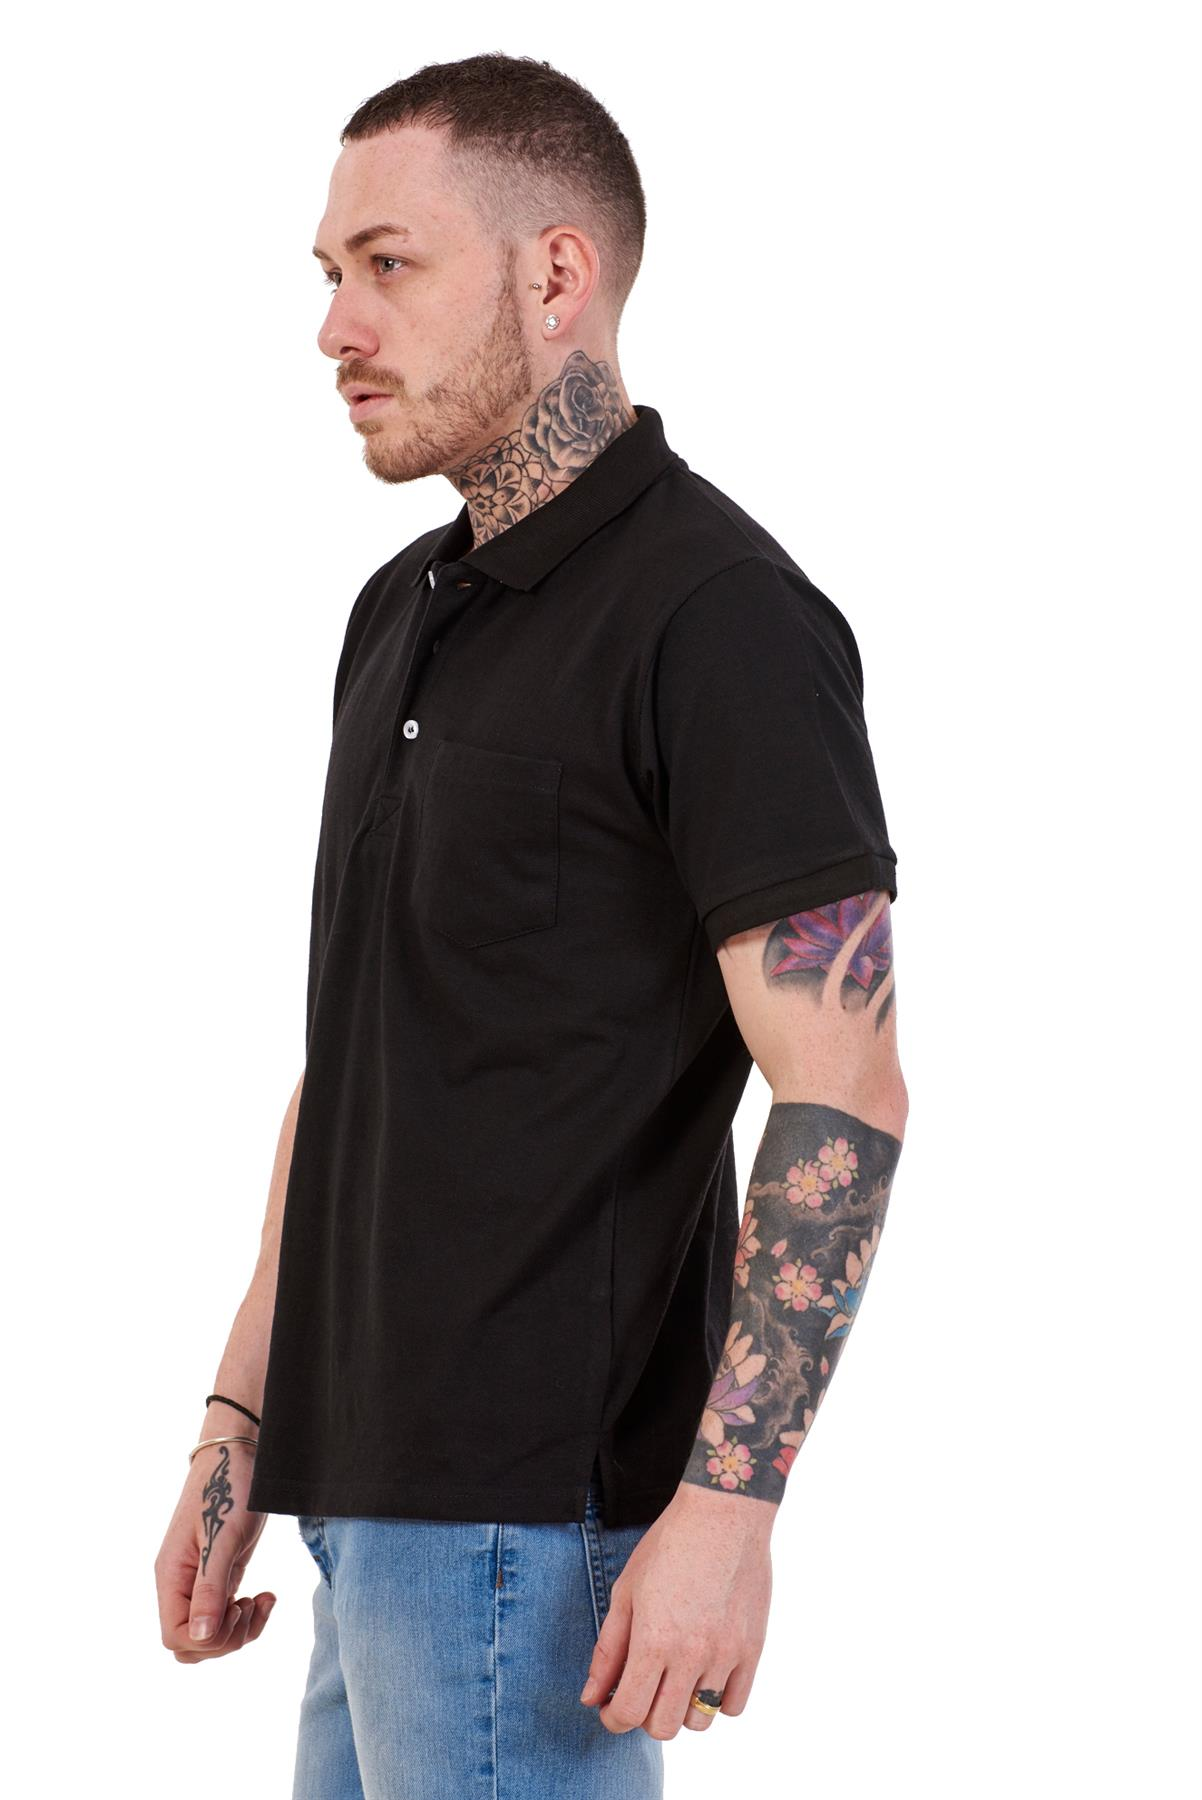 Mens-Cotton-T-Shirts-Regular-fit-Plain-Polo-Pocket-Casual-Formal-Shirt-Top-M-XXL thumbnail 4